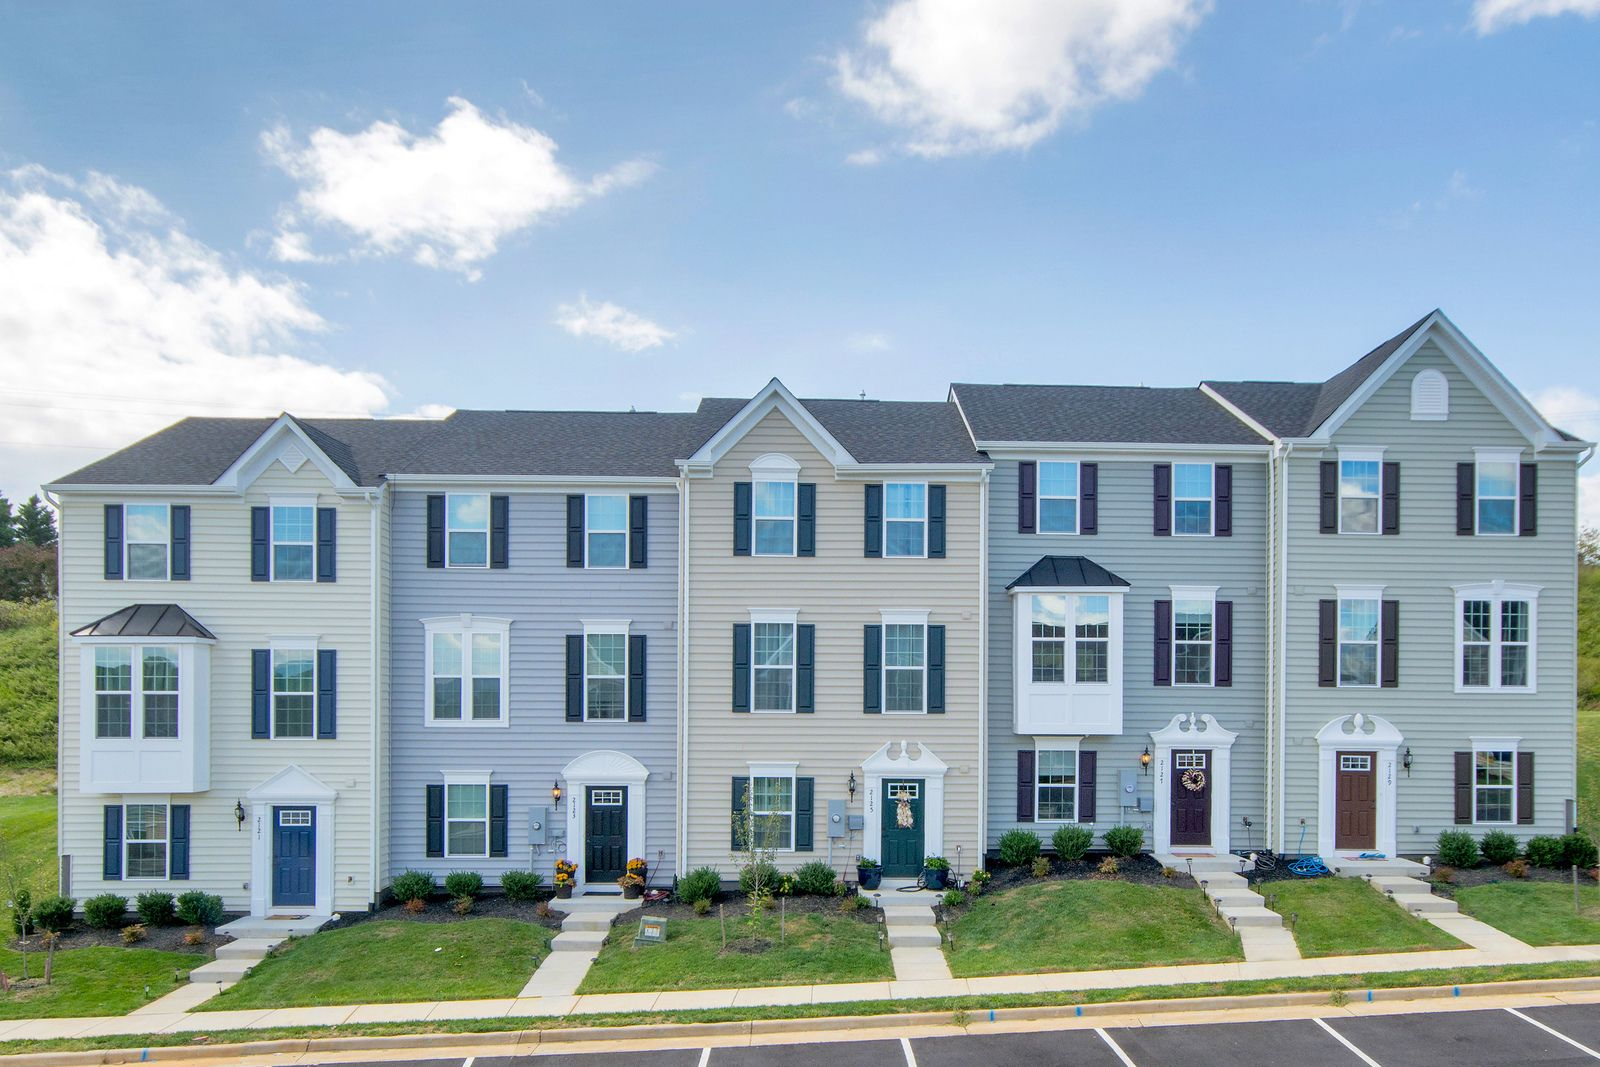 Welcome to Cedar Hill Townhomes:New garage townhomes in Anne Arundel County with future amenities from the mid $300s!Schedule your visit today!